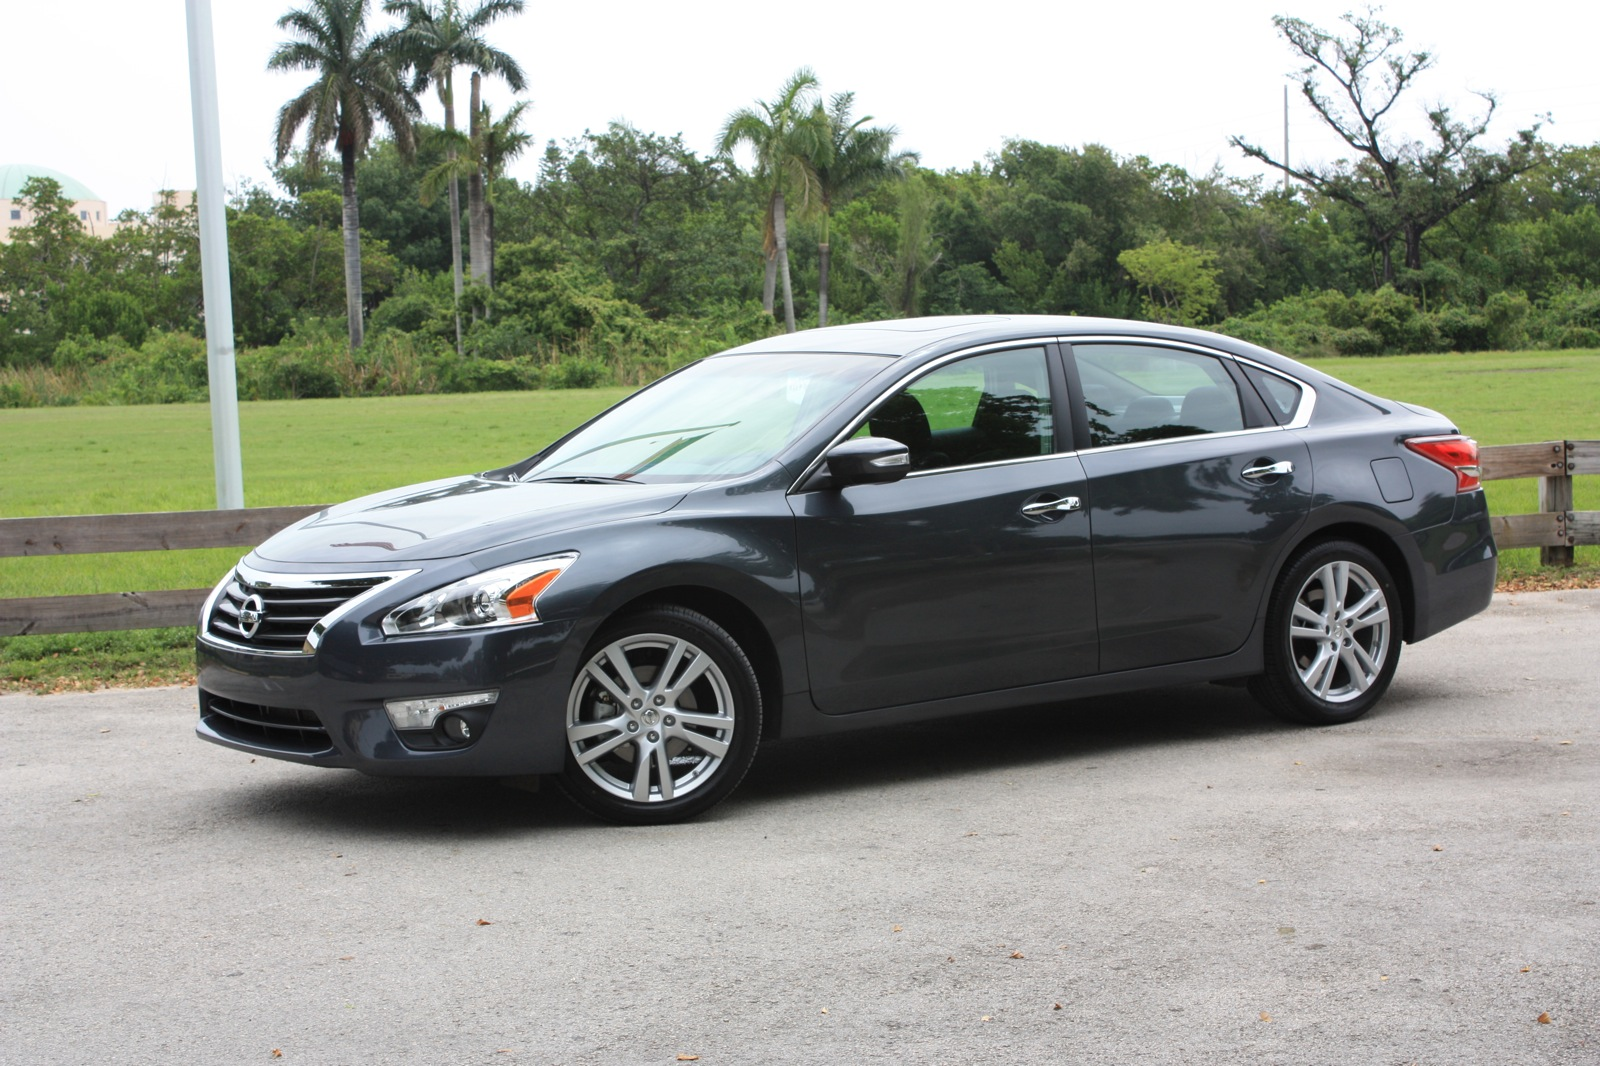 2013 Nissan Altima The Most Fuel Efficient Mid Size Car